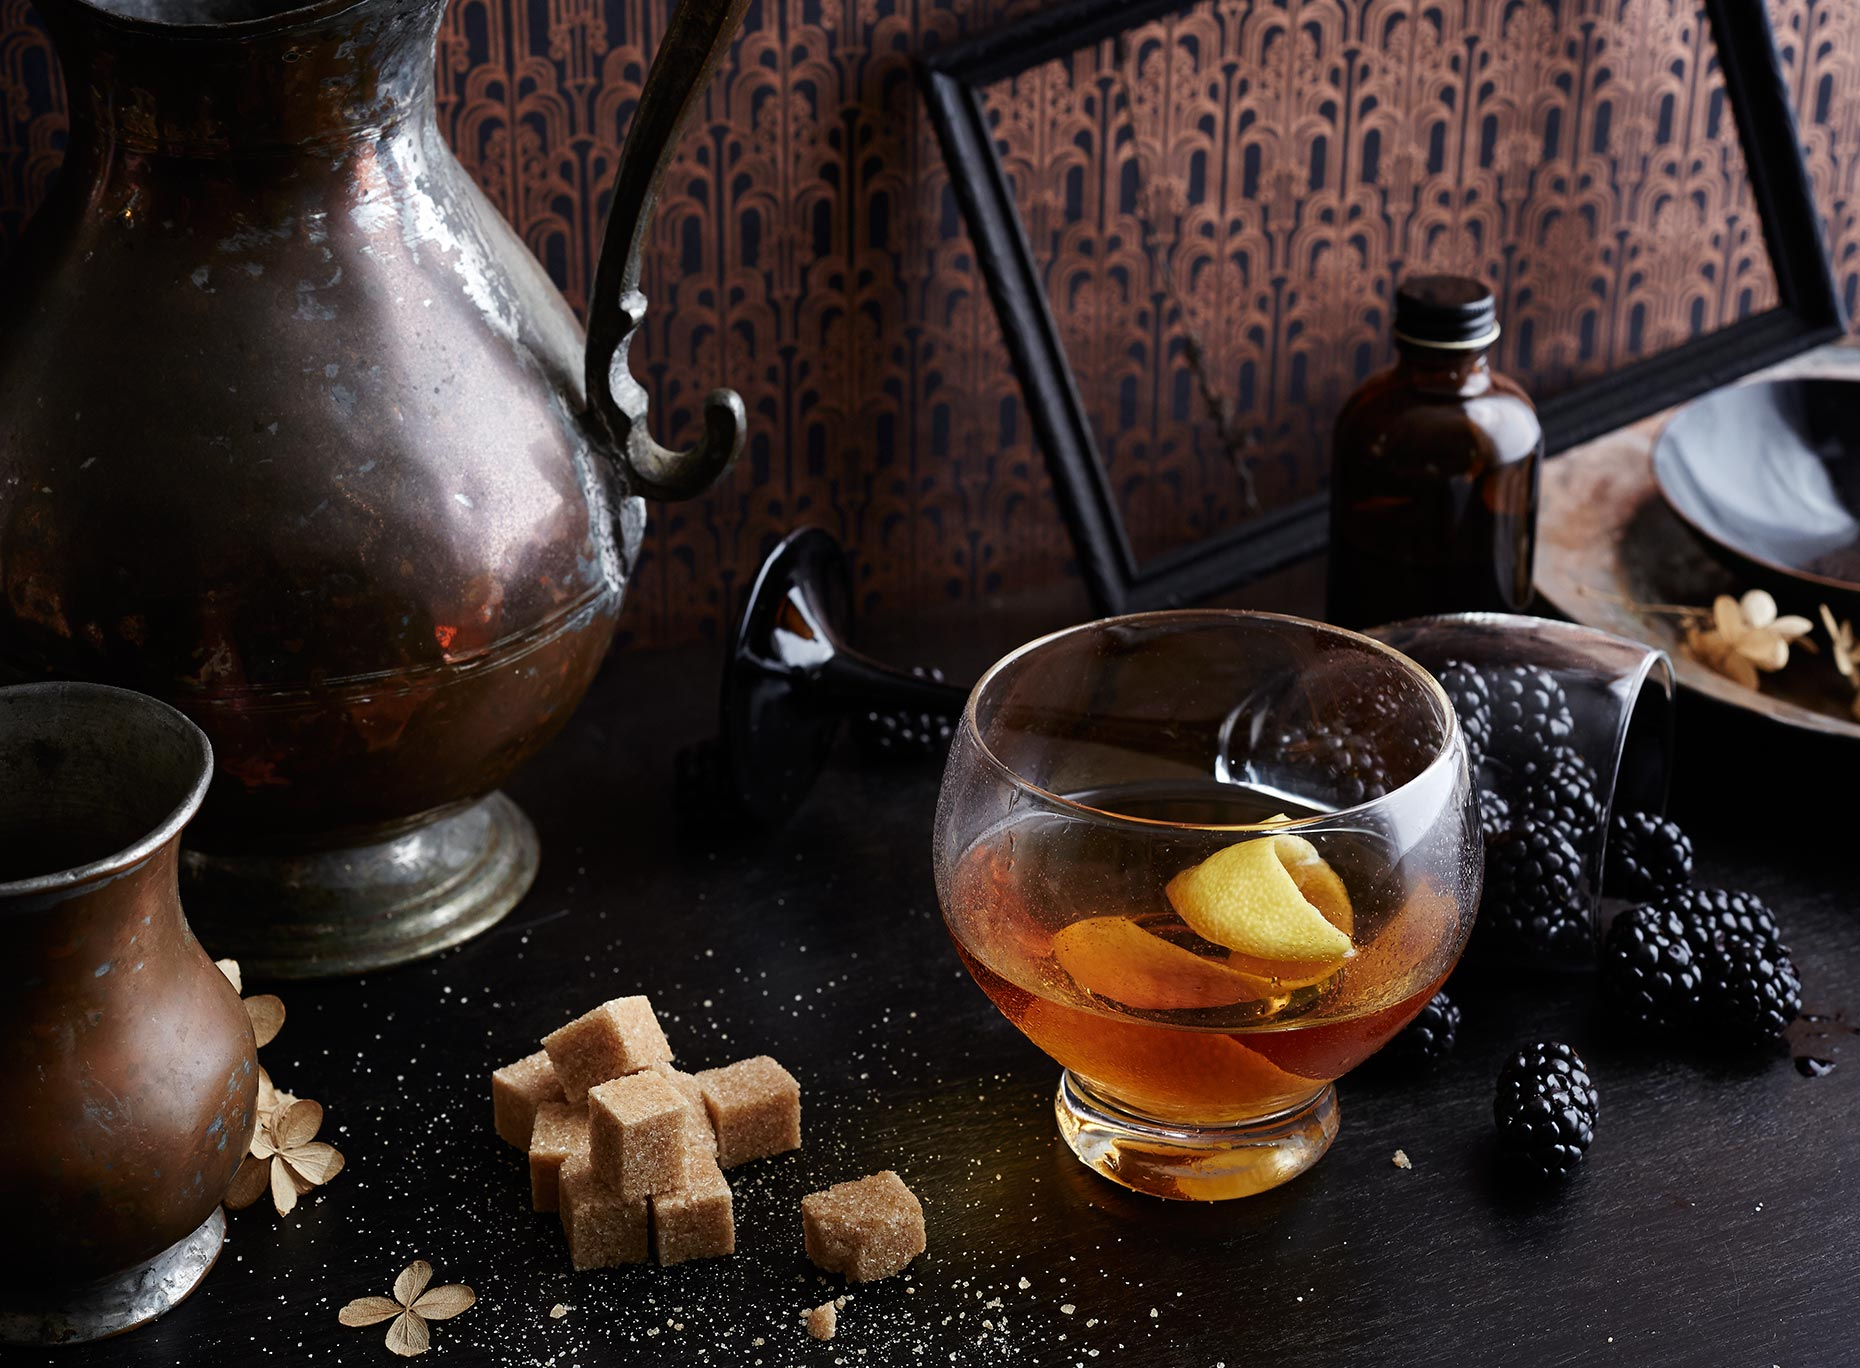 Sazerac_Drink_01_Final_Flat_for_Web.jpg